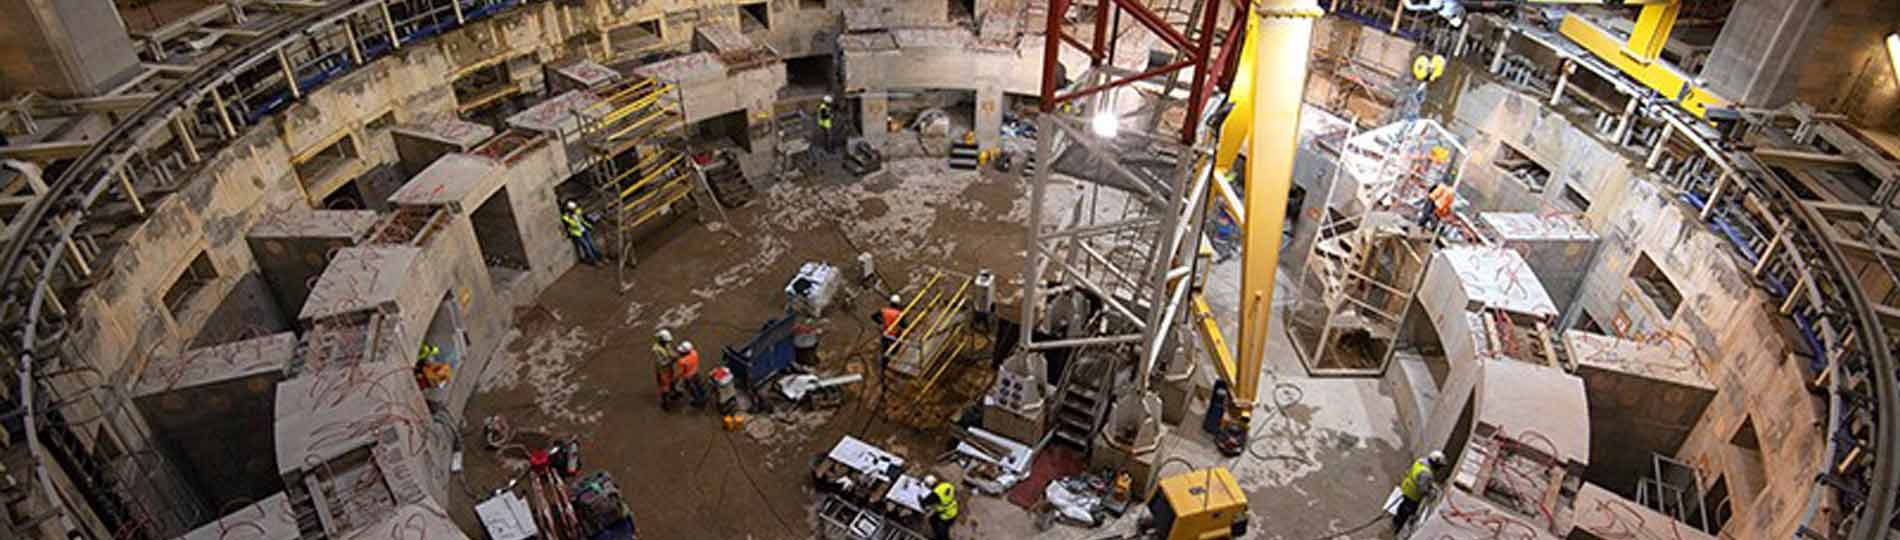 UK hatches plan to build world's first fusion power plant